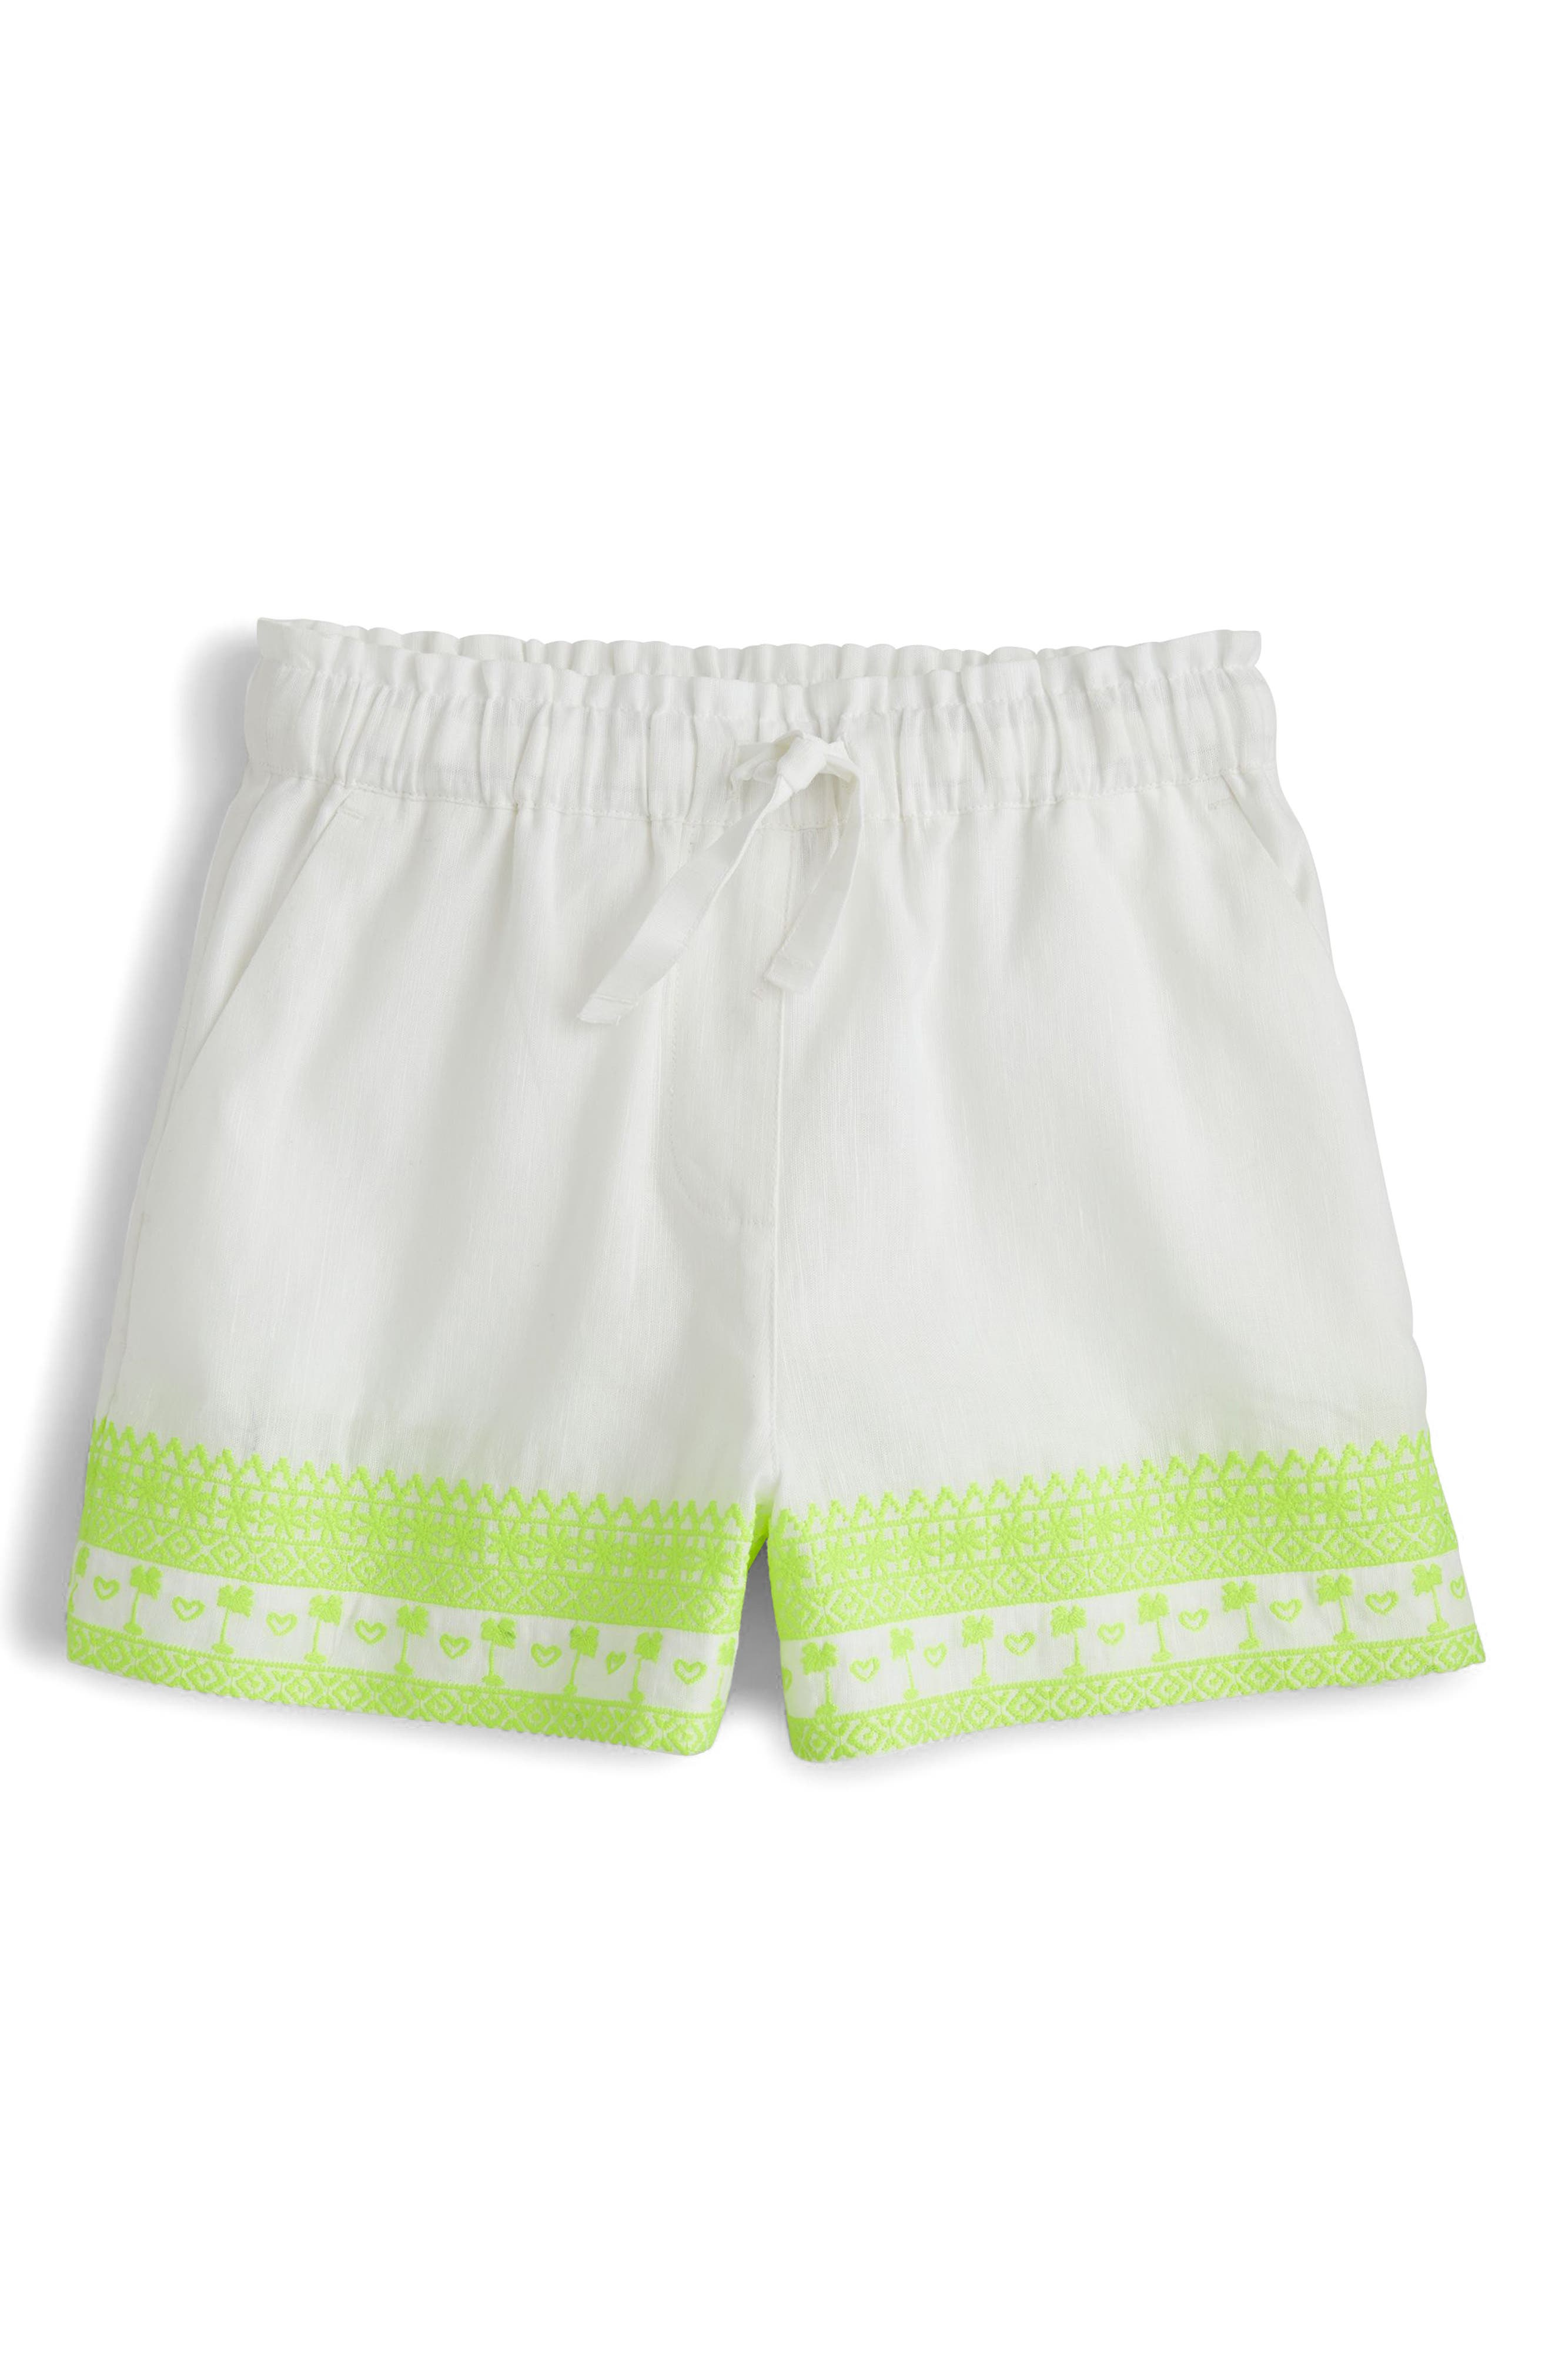 Skirty Embroidered Shorts,                         Main,                         color, White